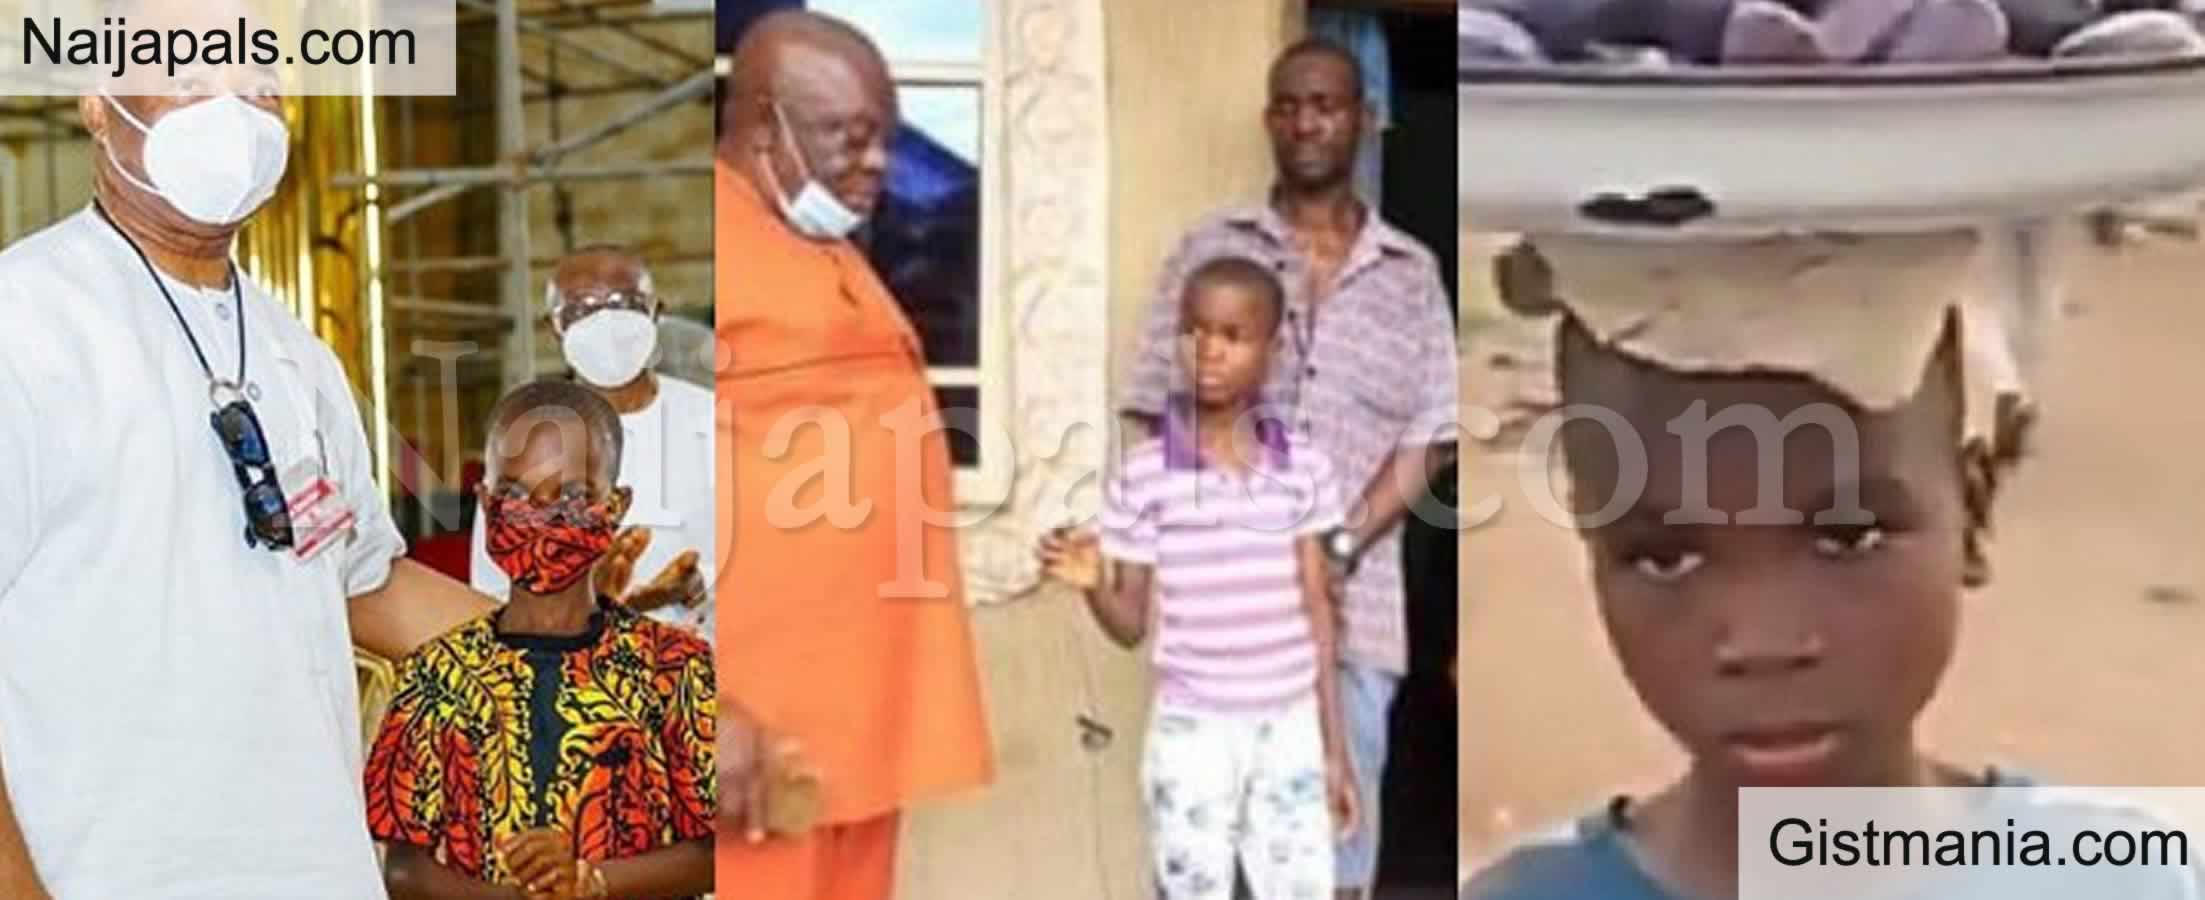 <img alt='.' class='lazyload' data-src='https://img.gistmania.com/emot/photo.png' /> <b>Imo State Governor, Hope Uzodimma Goes To Church With Oluomachi Opara, His Adopted Son</b> (Photos)